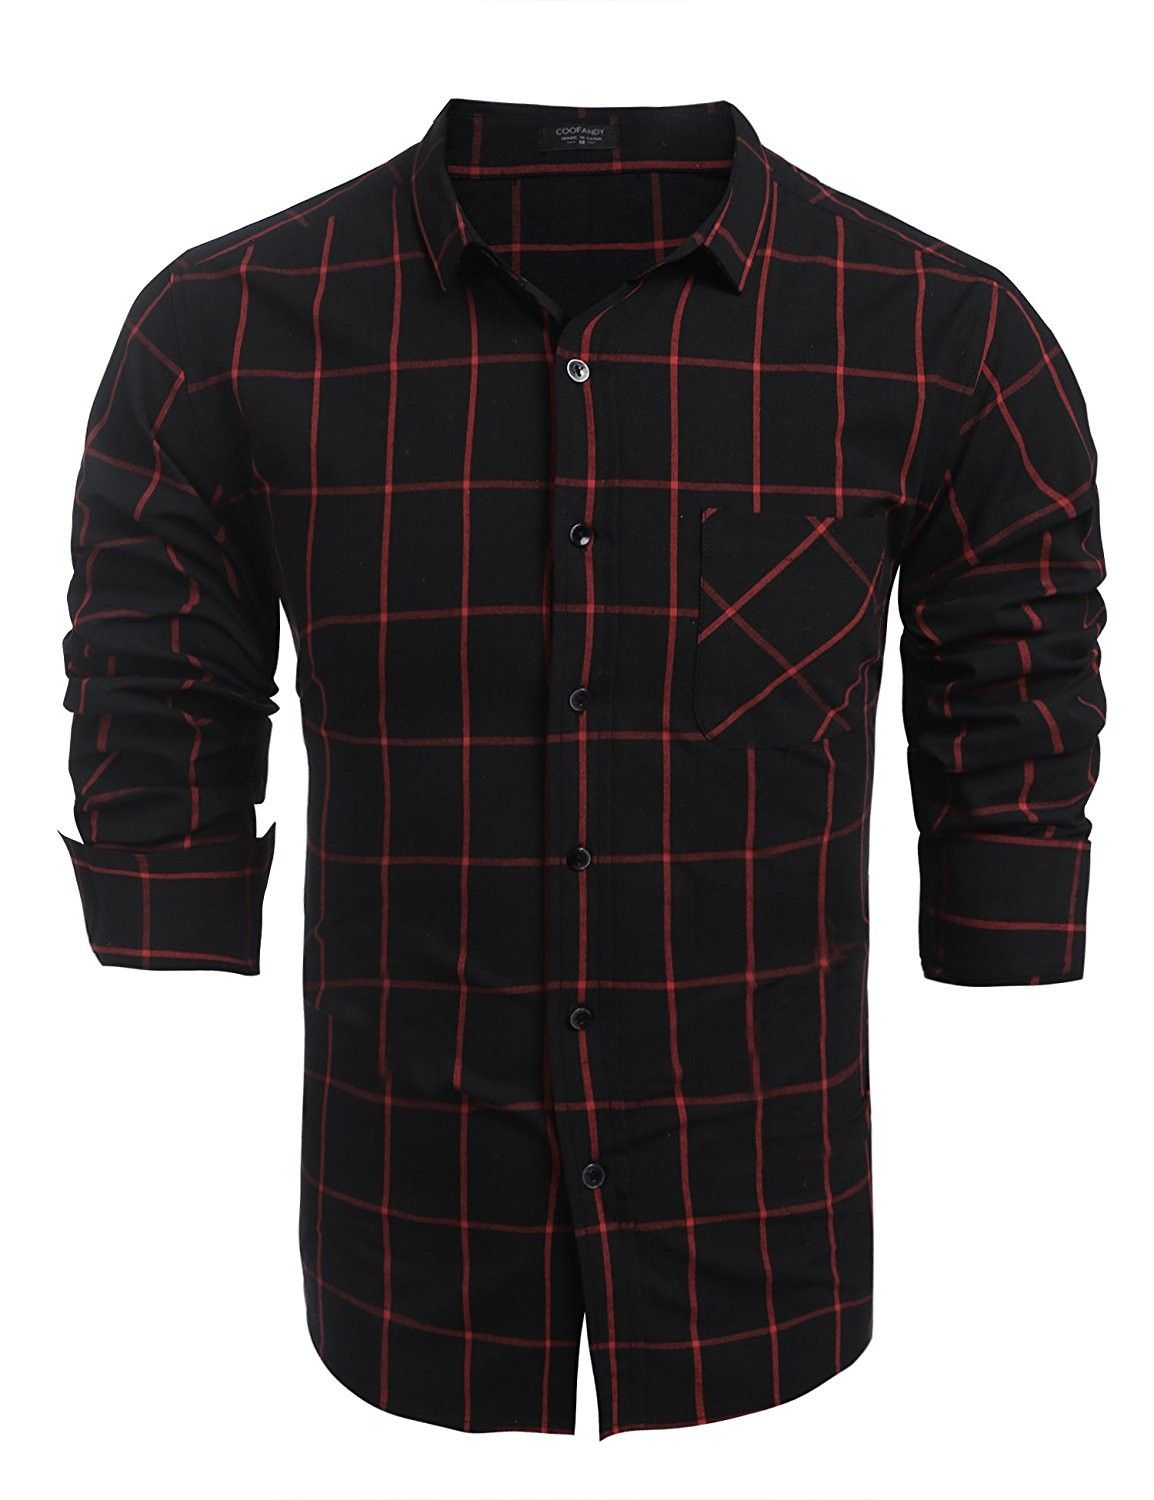 88a770cc Men's Casual Button Down Long Sleeve Dress Shirts Tops Plaid Shirts - Red -  CV12O0AQZ3J,Men's Clothing, Shirts, Casual Button-Down Shirts #Men #fashion  ...